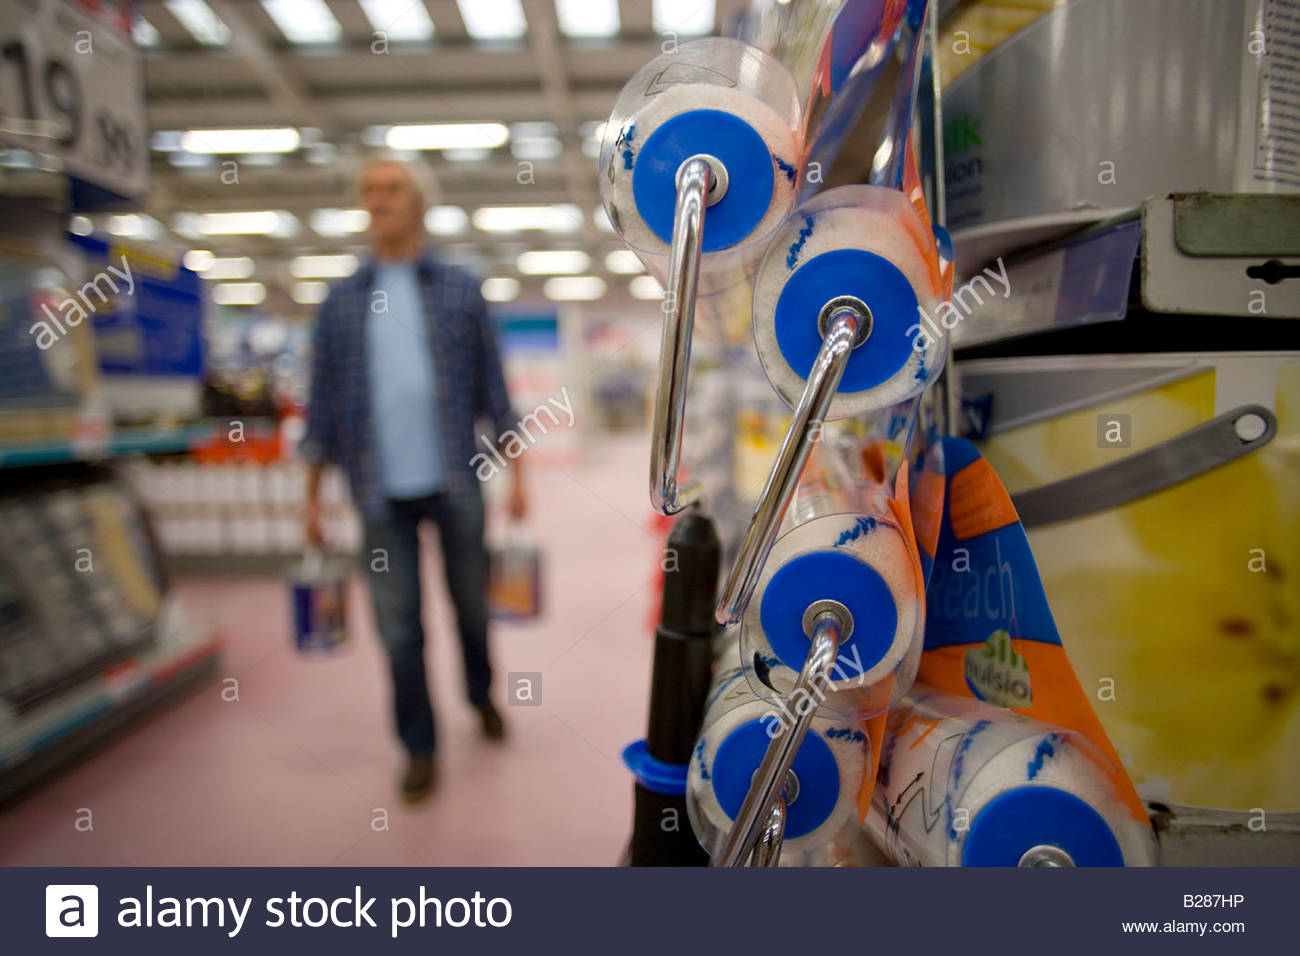 Man in hardware store, close-up of paint rollers - Stock Image